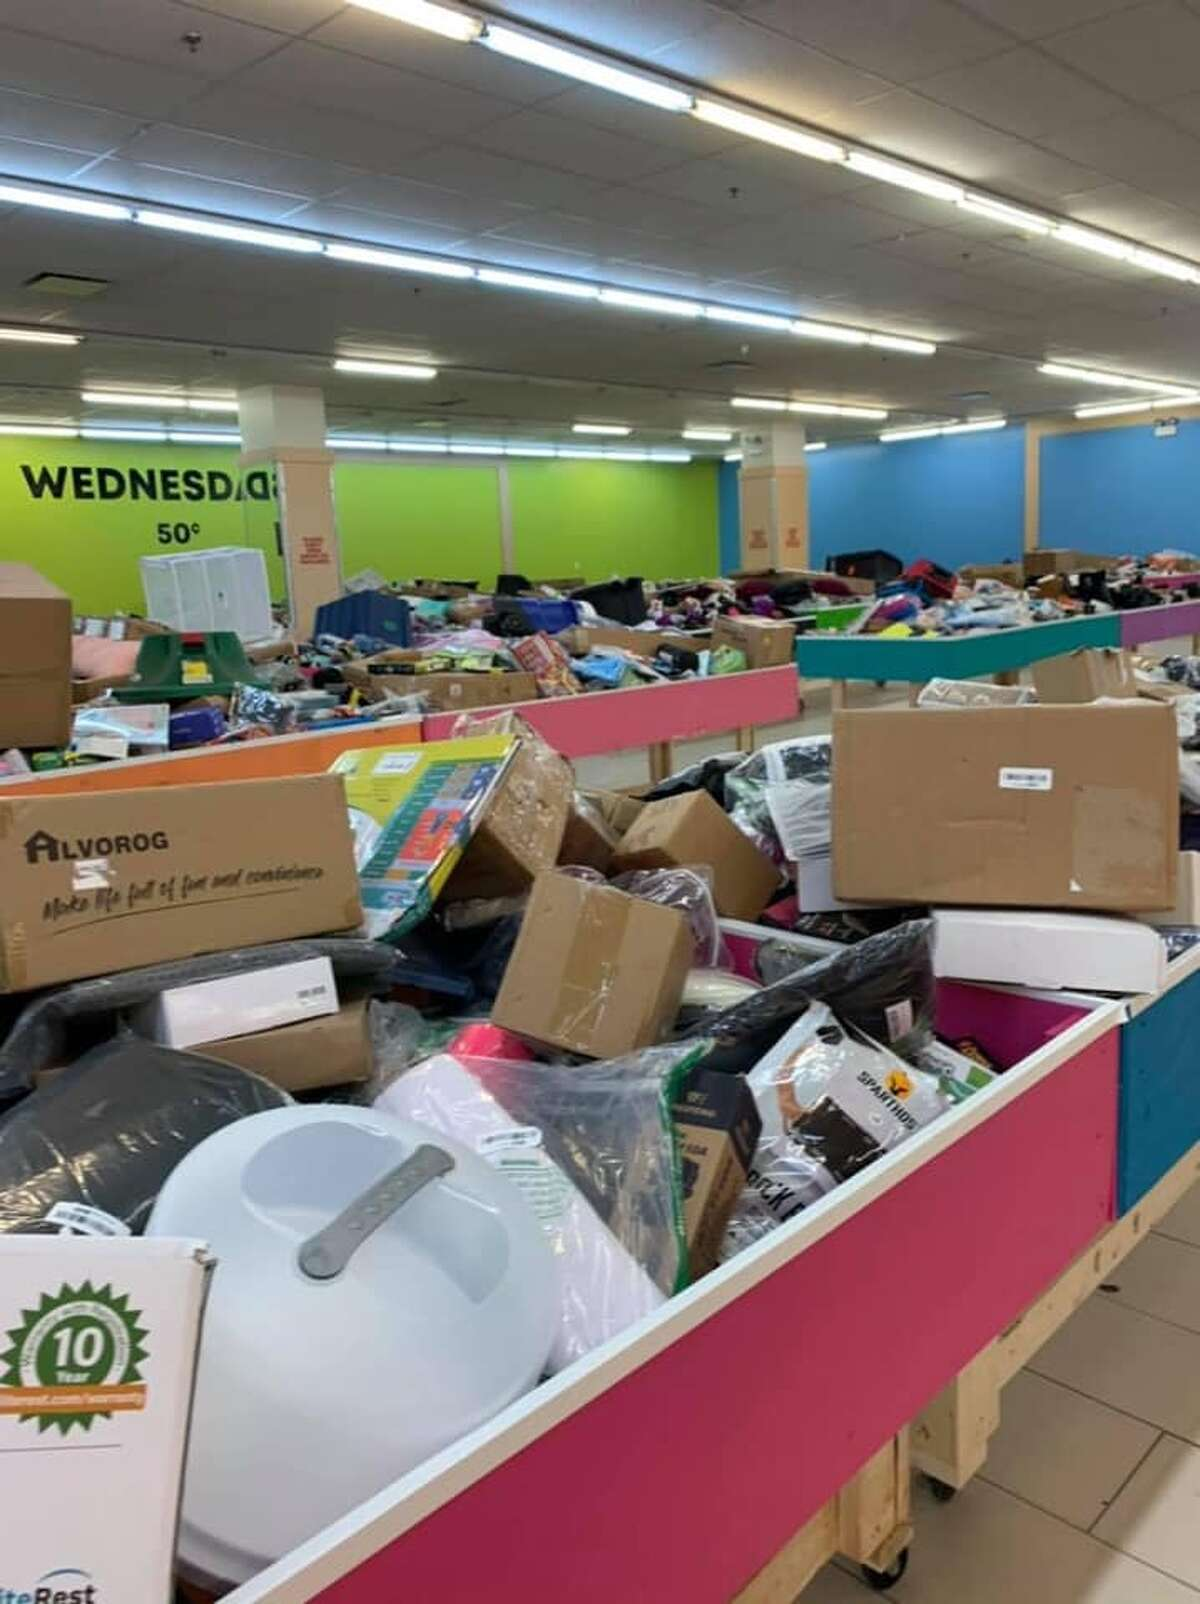 A Black Friday discount store that offers deals for $7 and under will open its San Antonio location in January. The photo is what the Houston store looks like, the business told mySA.com.